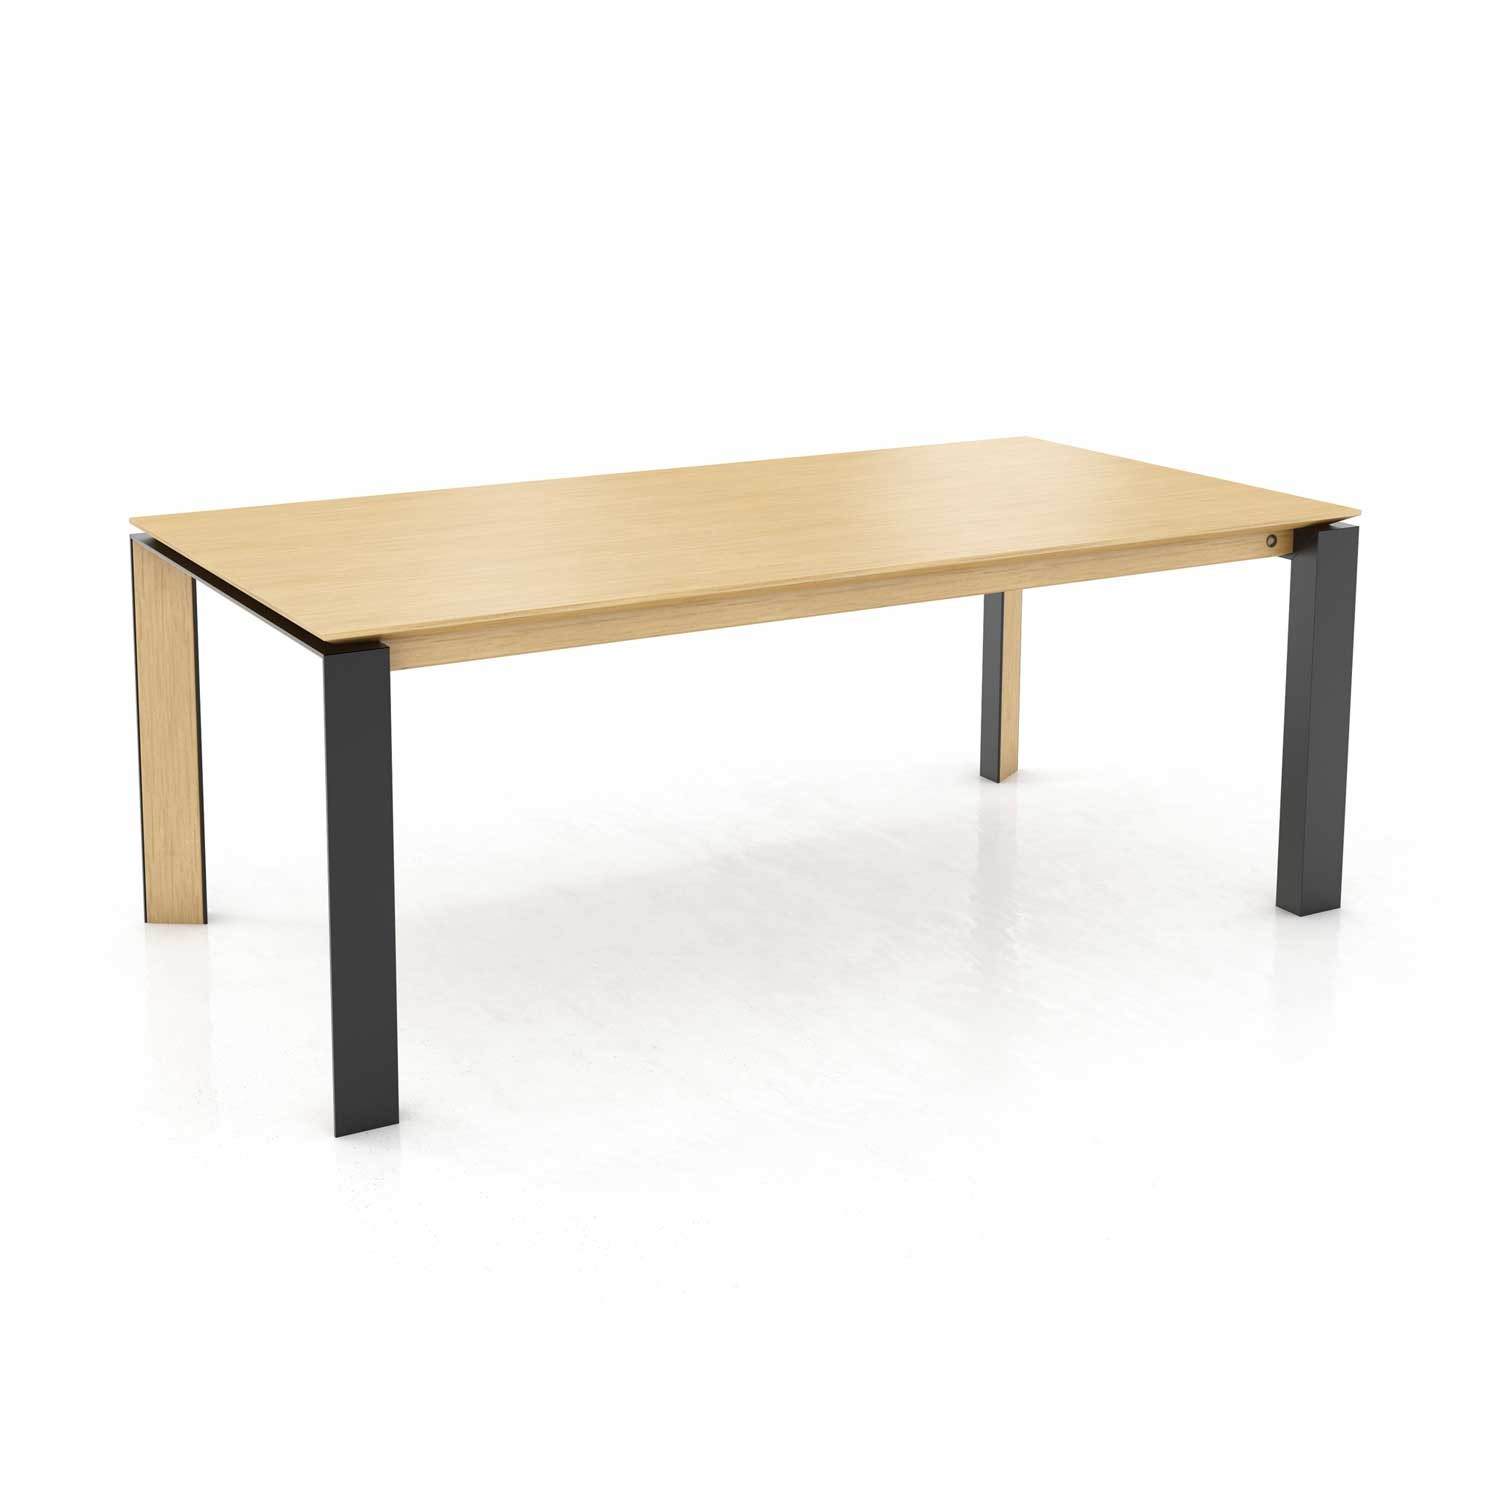 Mason metal leg PB3 oak dining table